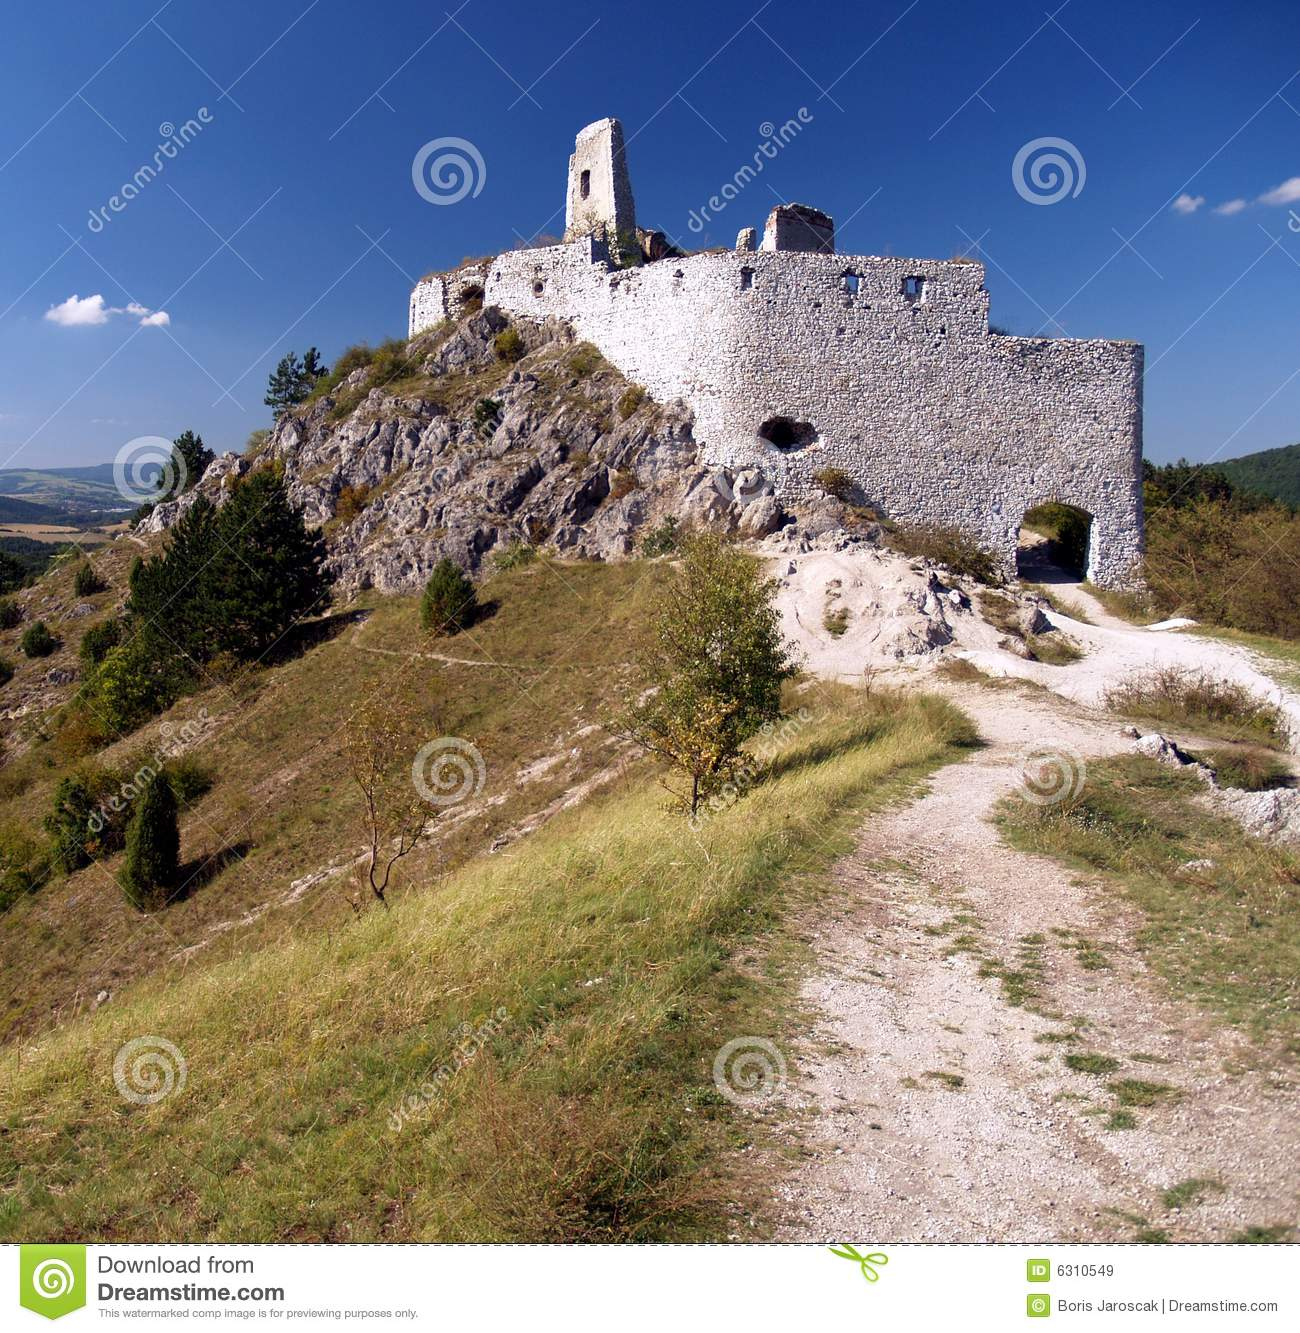 The Castle of Cachtice